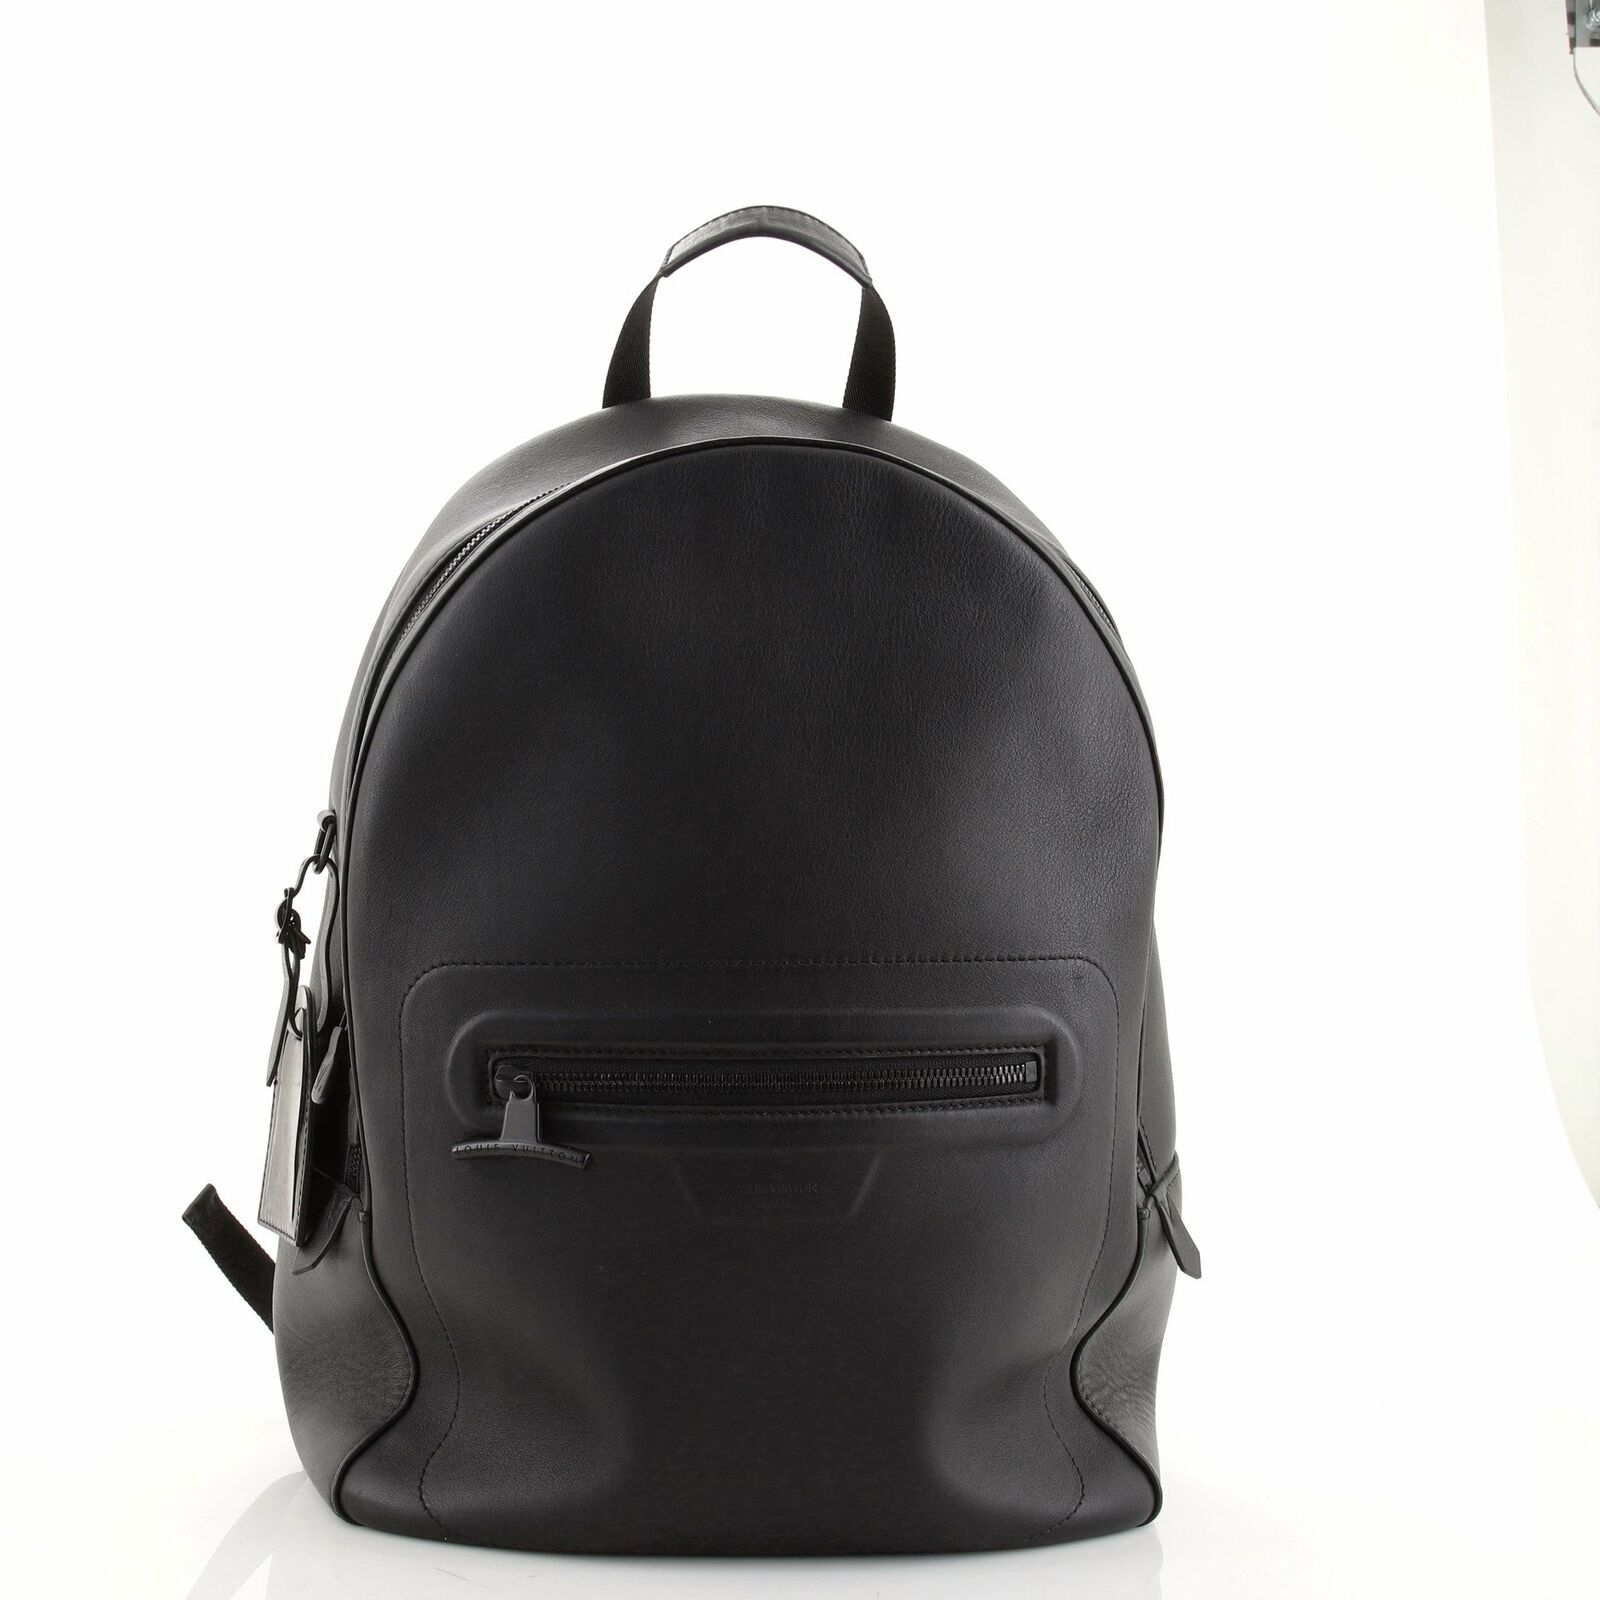 Louis Vuitton Backpack Dark Infinity Leather PM - image 1